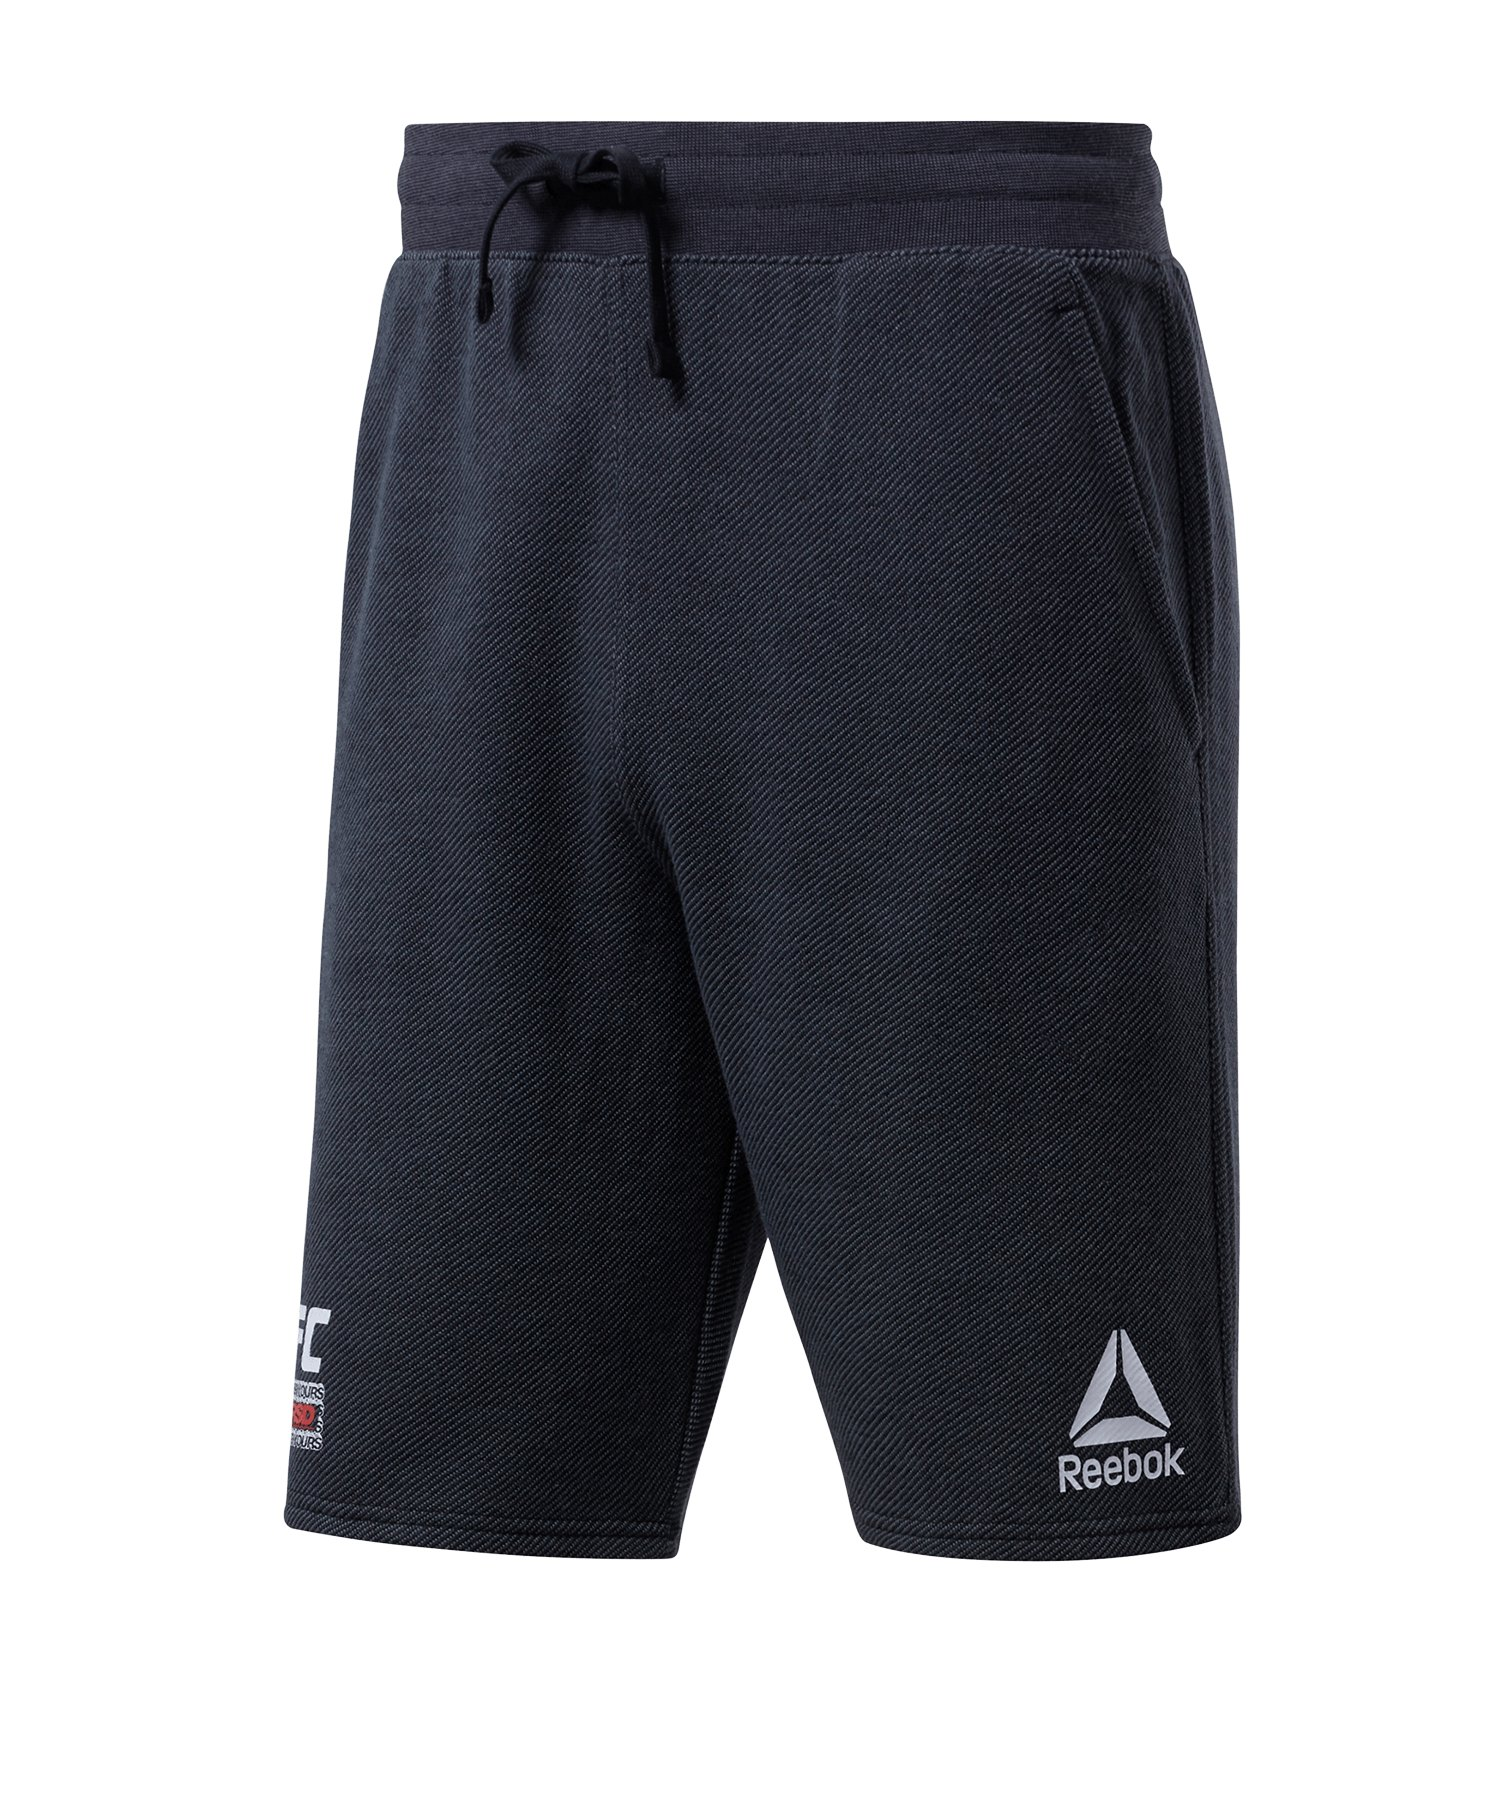 Reebok UFC FG Fight Week Short Schwarz - schwarz